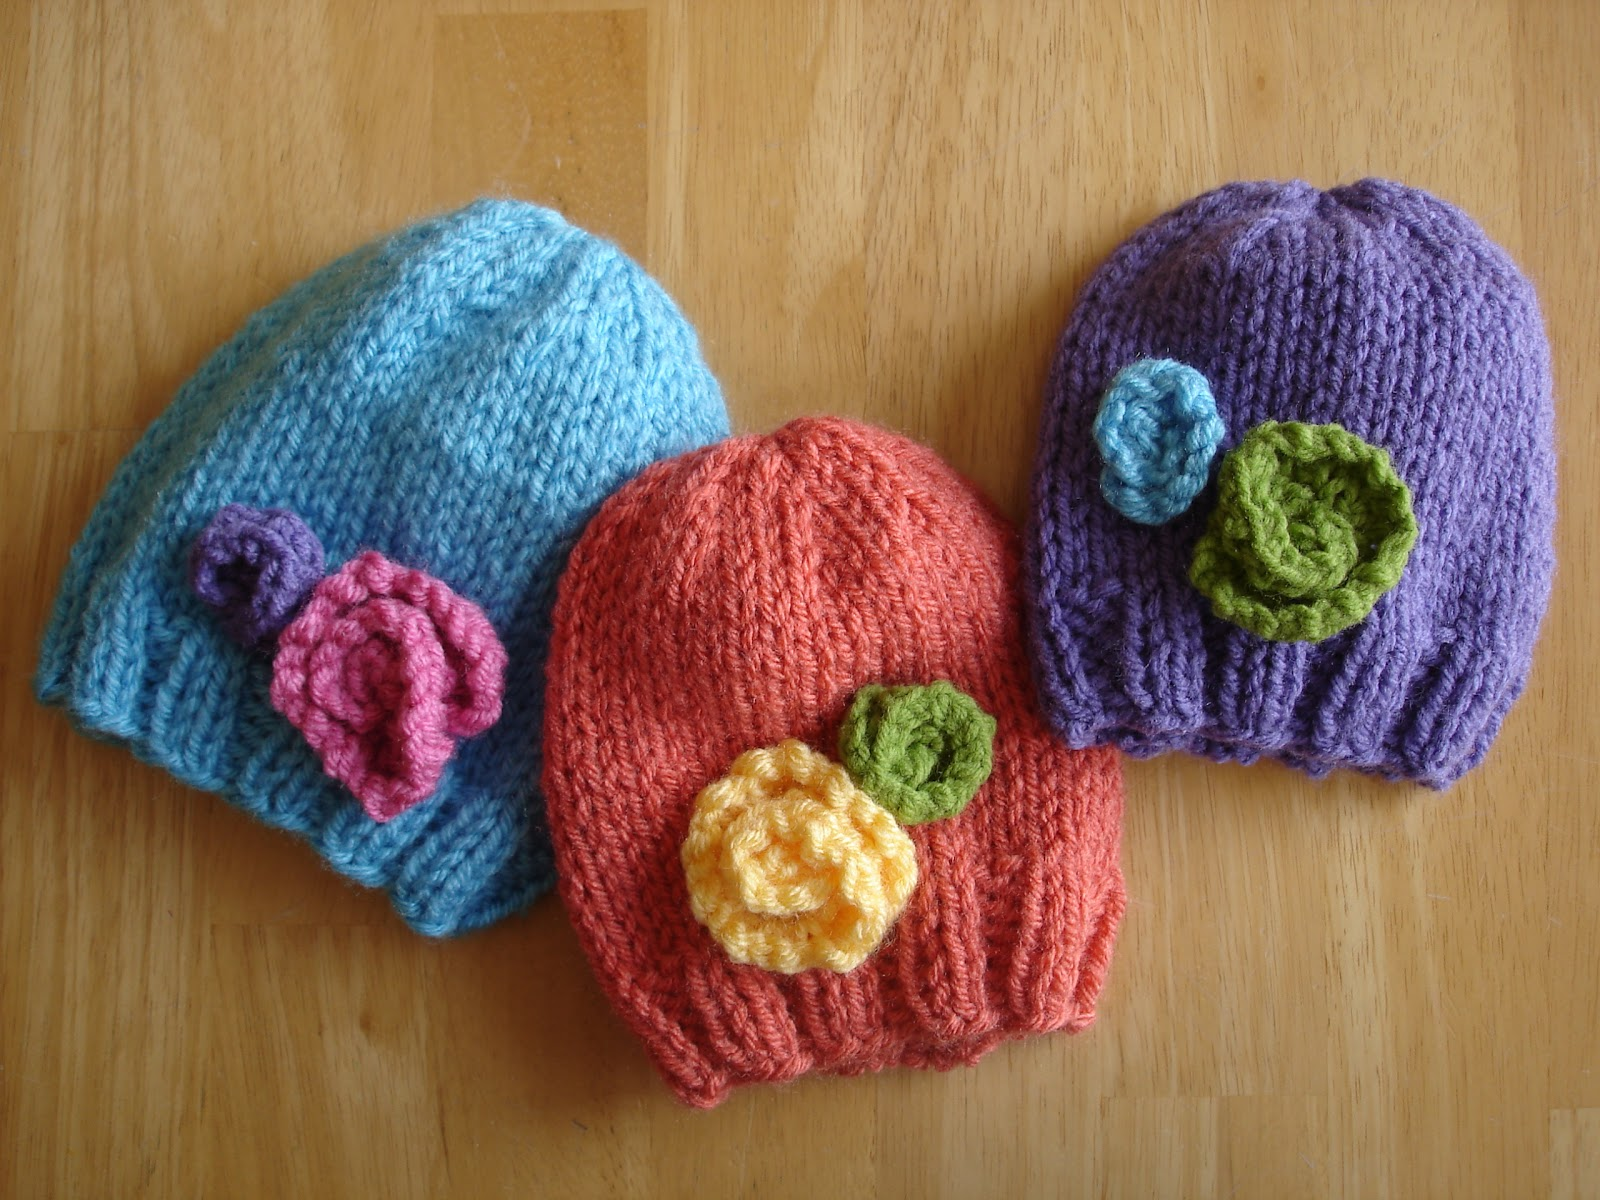 Free Patterns Knitting : Fiber Flux: Free Knitting Pattern! Baby In Bloom Hats